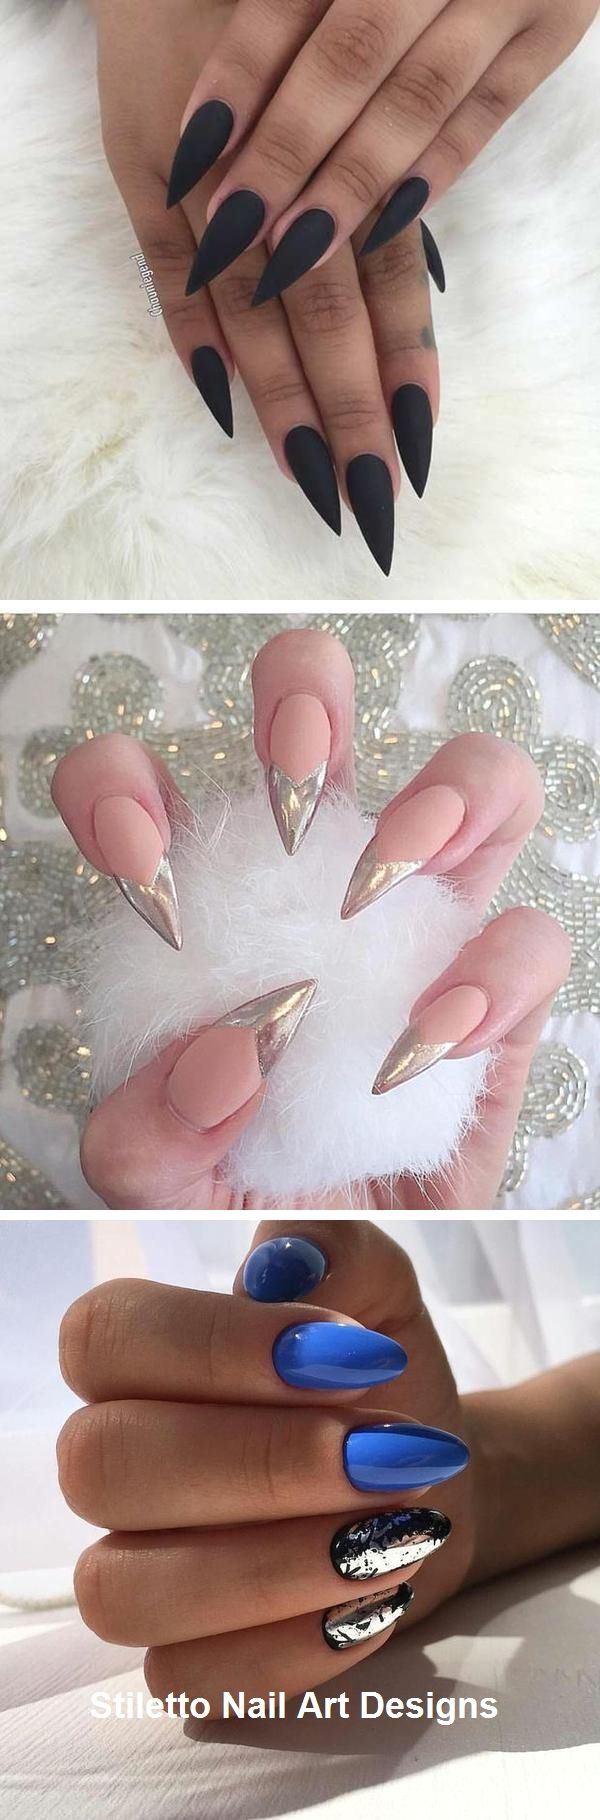 30 Ideen für großartige Stiletto-Nageldesigns #naildesign #stiletto – Schön